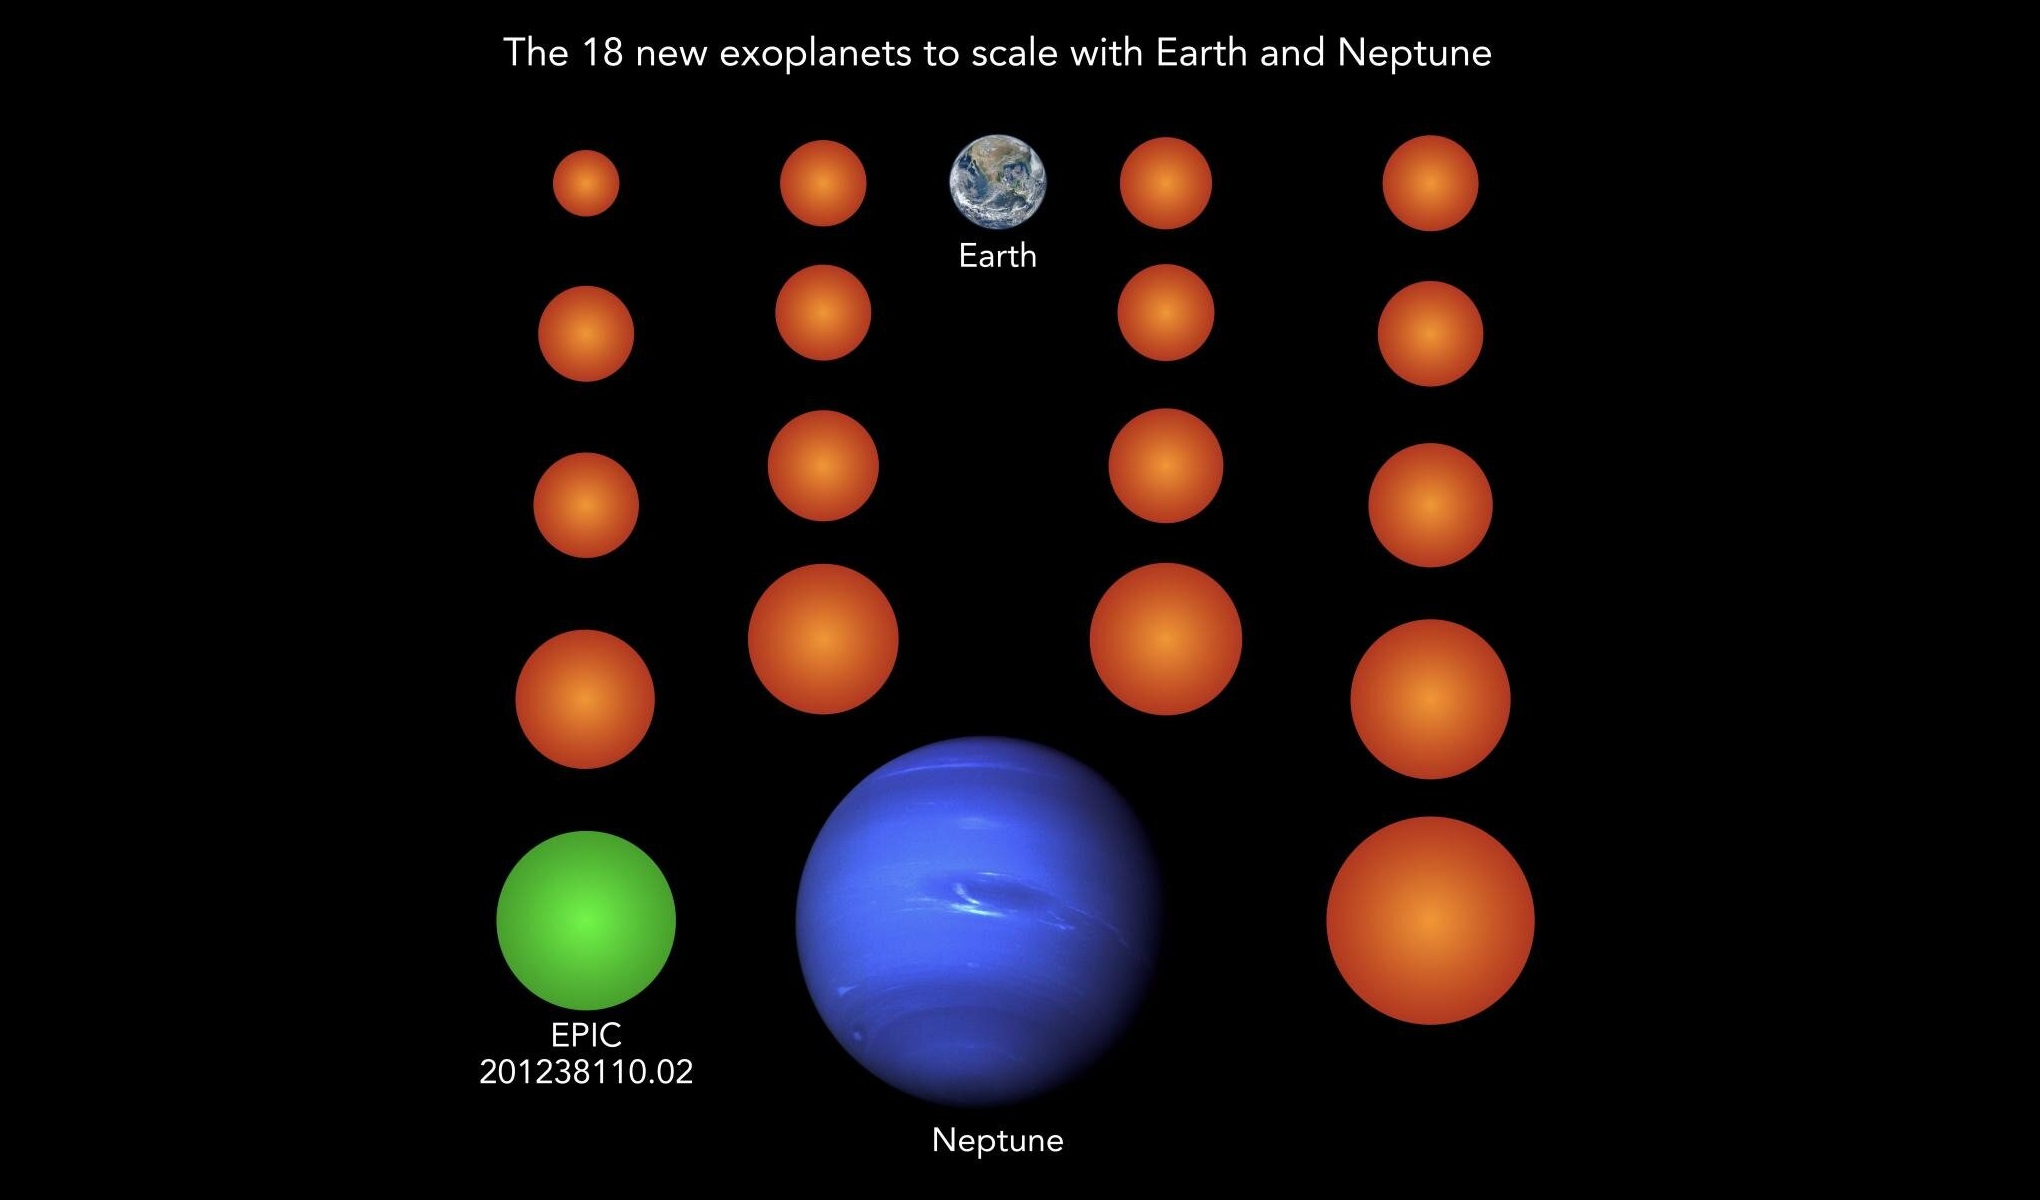 Almost all known exoplanets are larger than Earth and typically as large as the gas planet Neptune. The 18 newly discovered planets (here in orange and green), for comparison, are much smaller than Neptune, three of them even smaller than Earth and two more as large as Earth. Planet EPIC 201238110.02 is the only one of the new planets cool enough to potentially host liquid water on its surface. - Image Credits: NASA/JPL (Neptune), NASA/NOAA/GSFC/Suomi NPP/VIIRS/Norman Kuring (Earth), MPS/René Heller